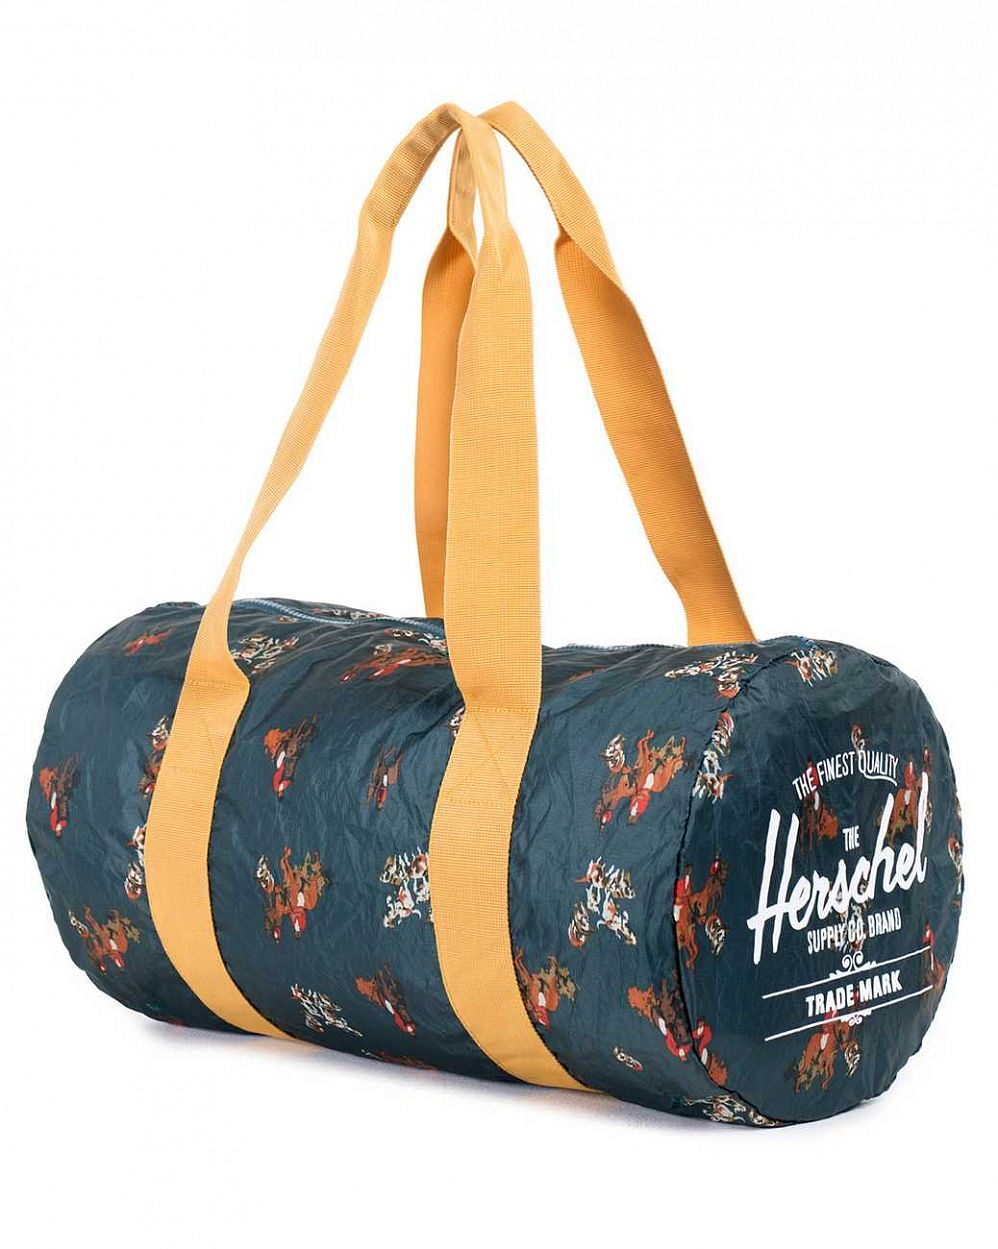 Сумка складная Herschel Packable Duffle Bag Hunt Copper цена в Москве